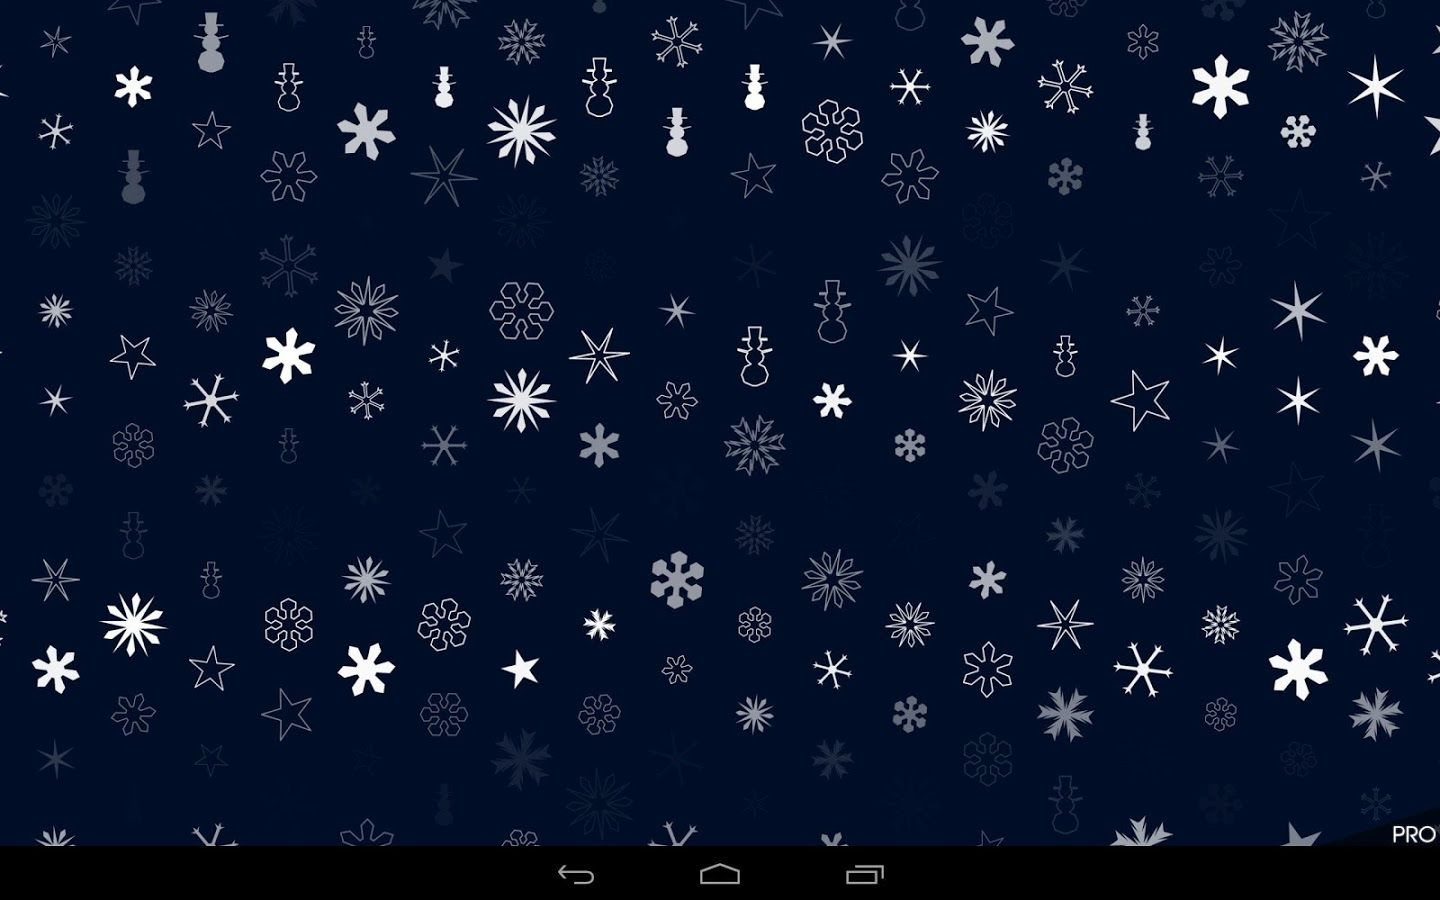 Light Grid Live Wallpaper - Android Apps on Google Play